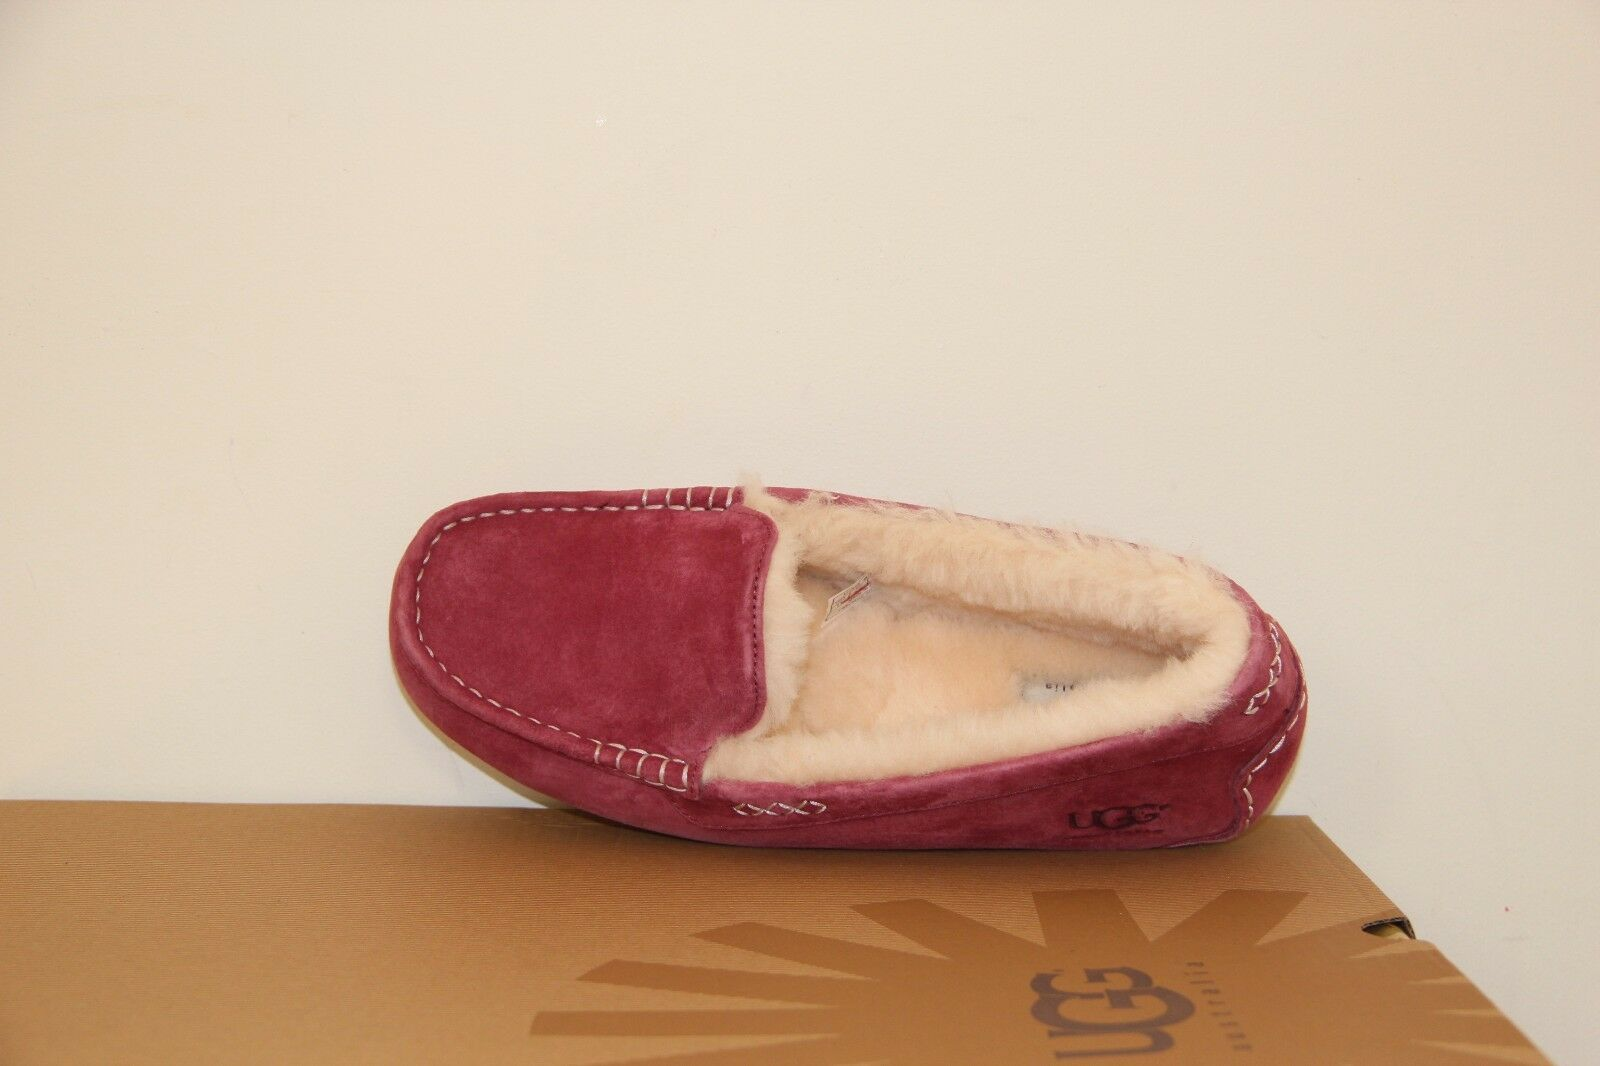 si l'australie  s moccasin ansley moccasin s taille 5 nib ff1dcf